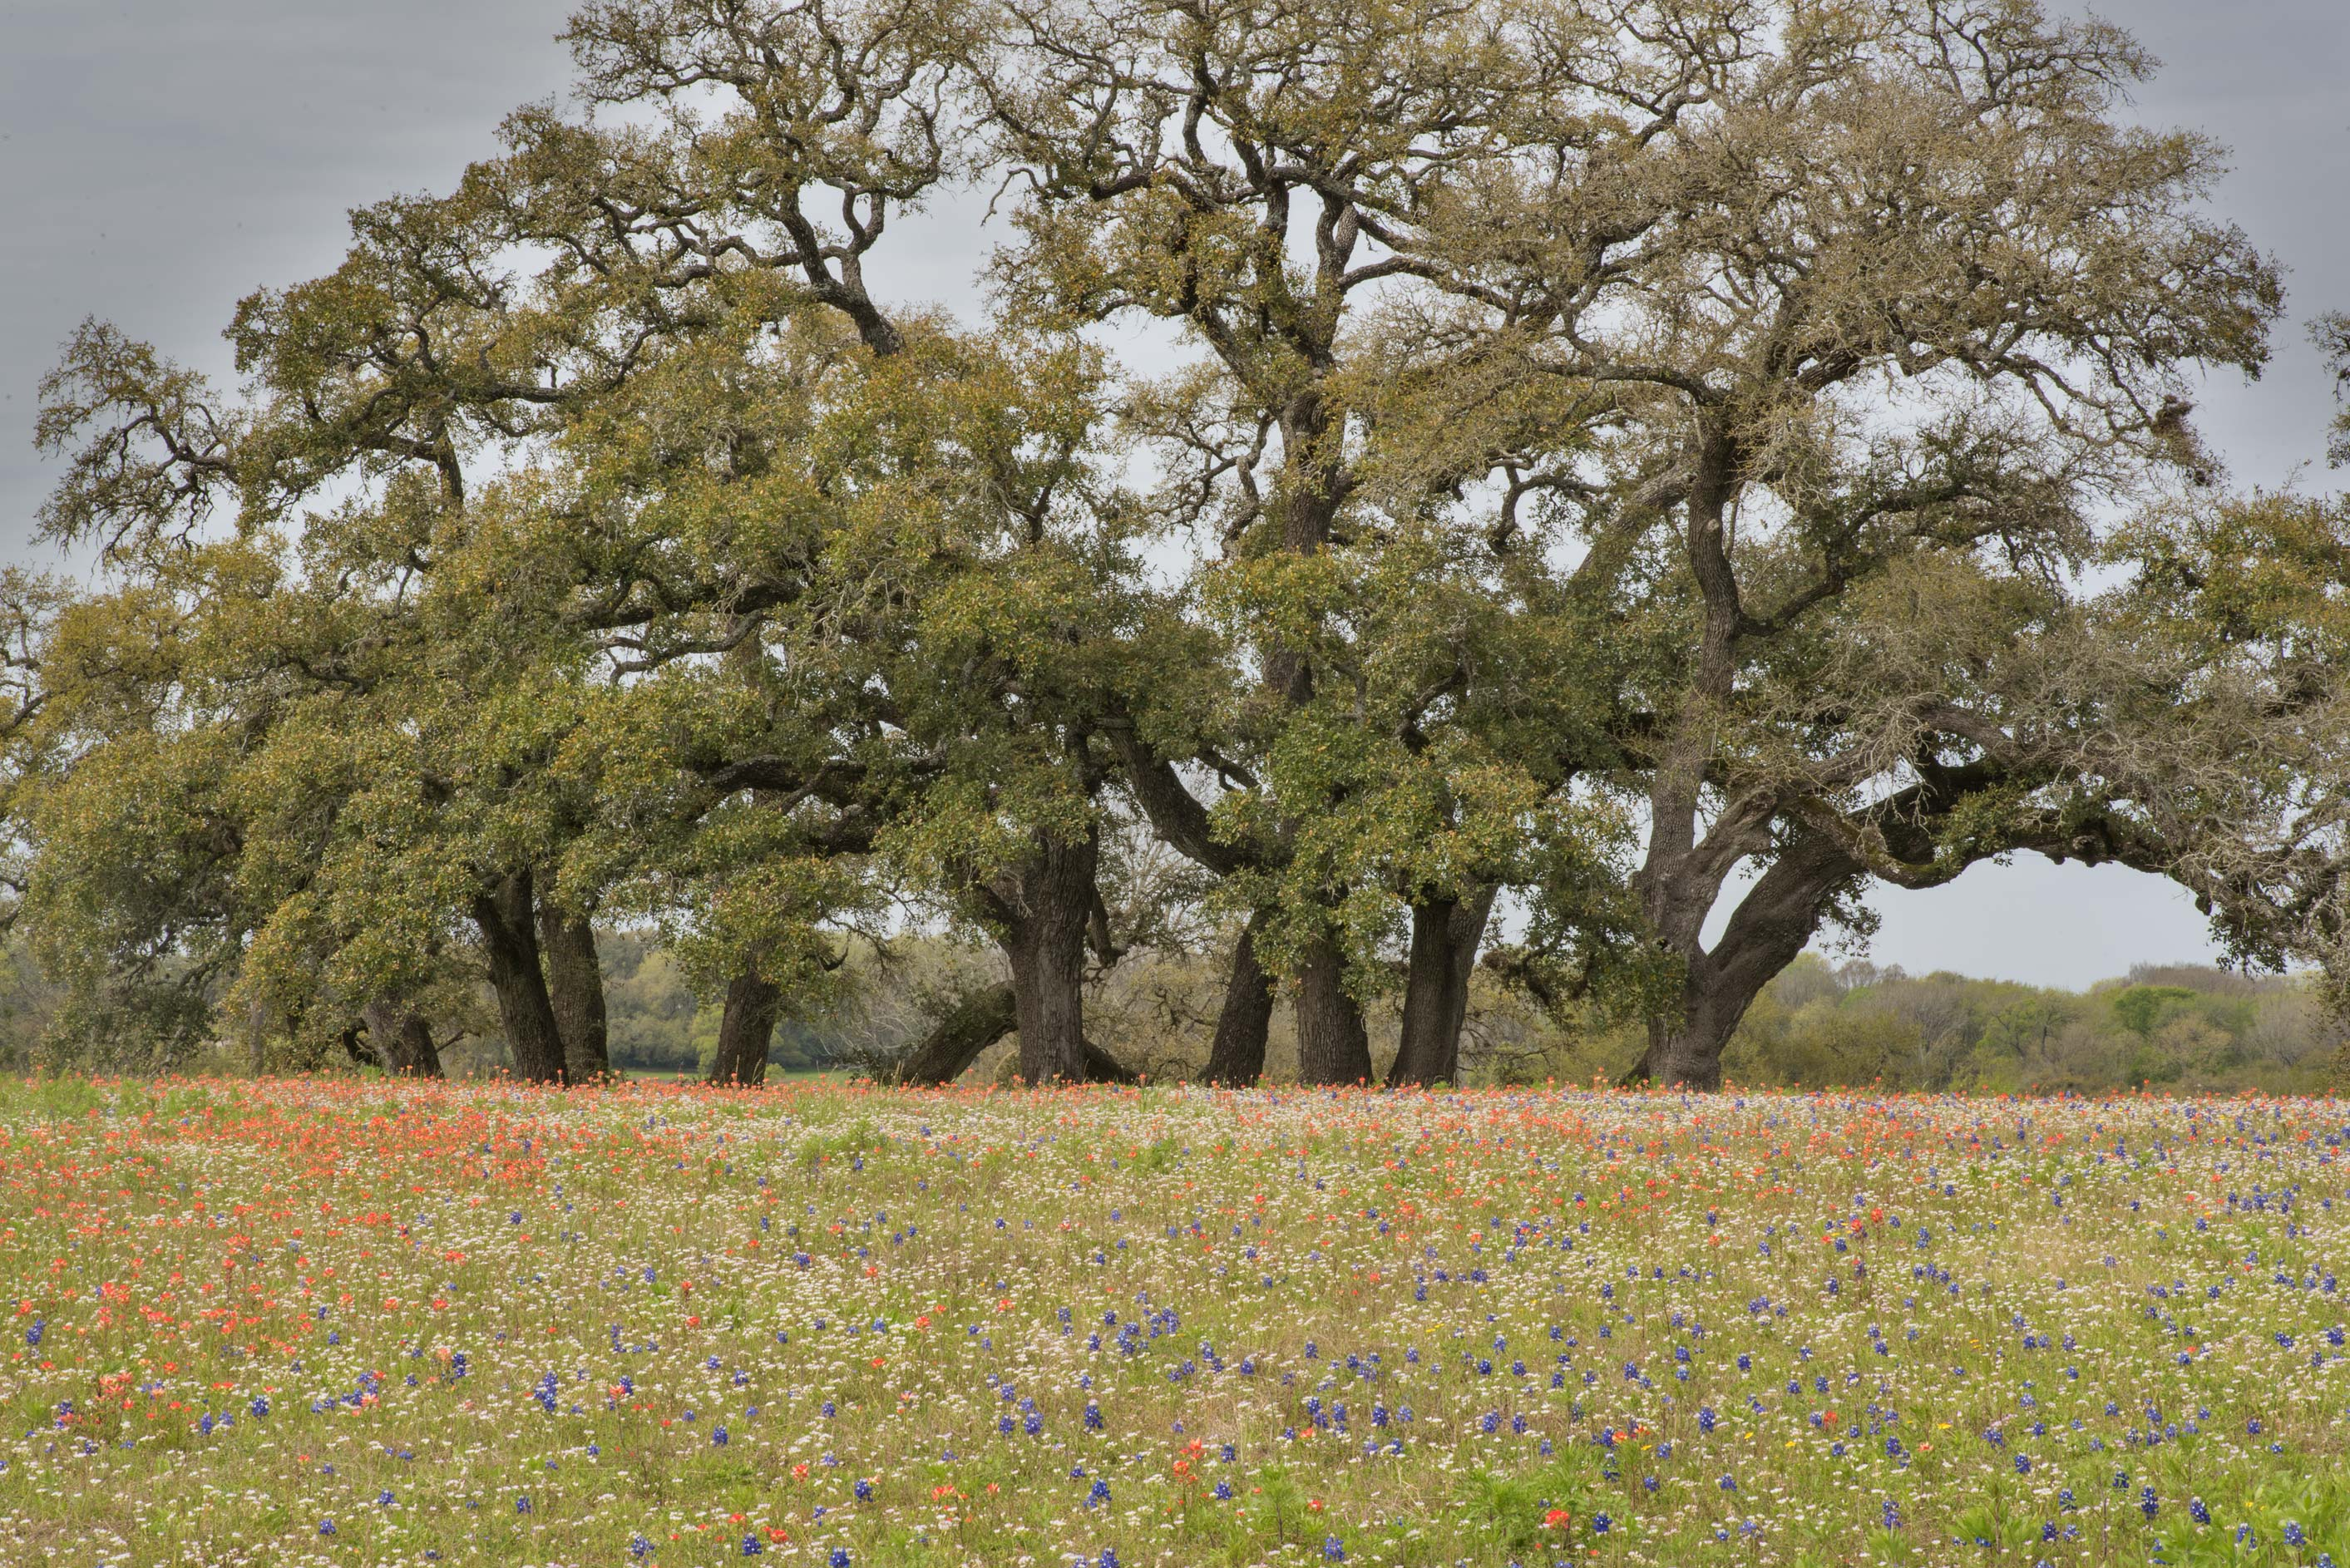 Old oaks in Old Baylor Park. Independence, Texas